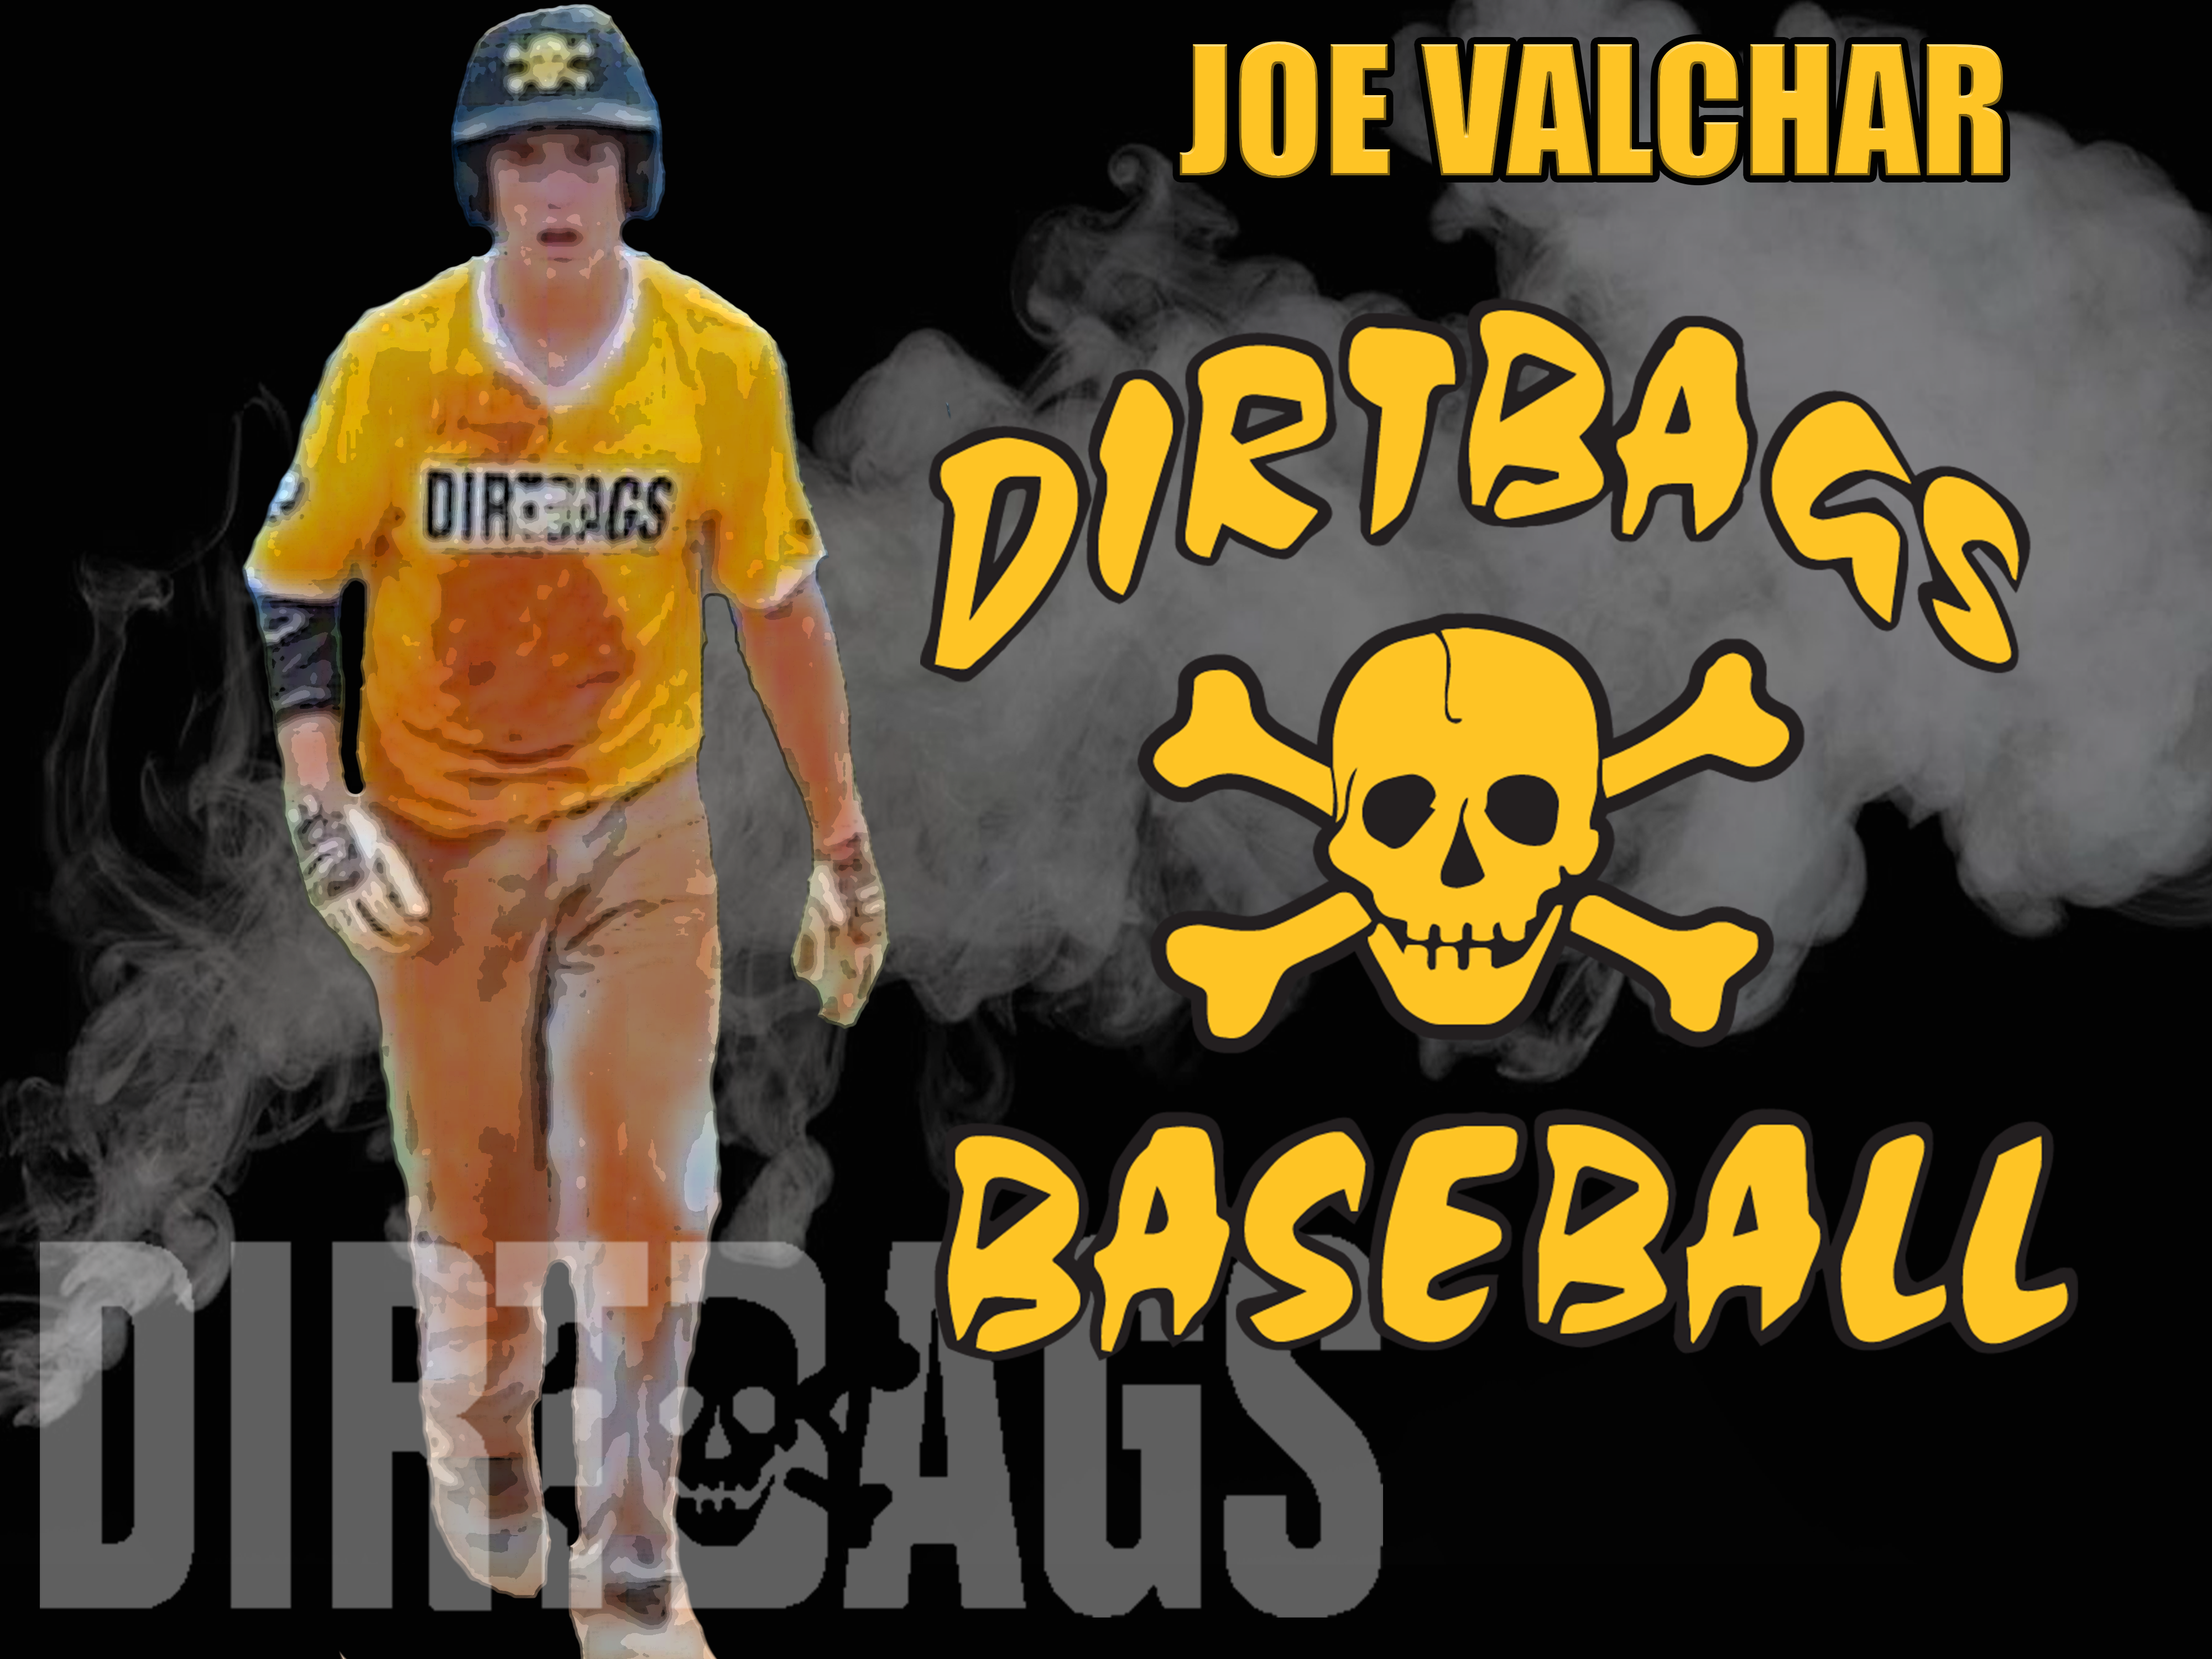 Testimonial Tuesday: Joe Valchar